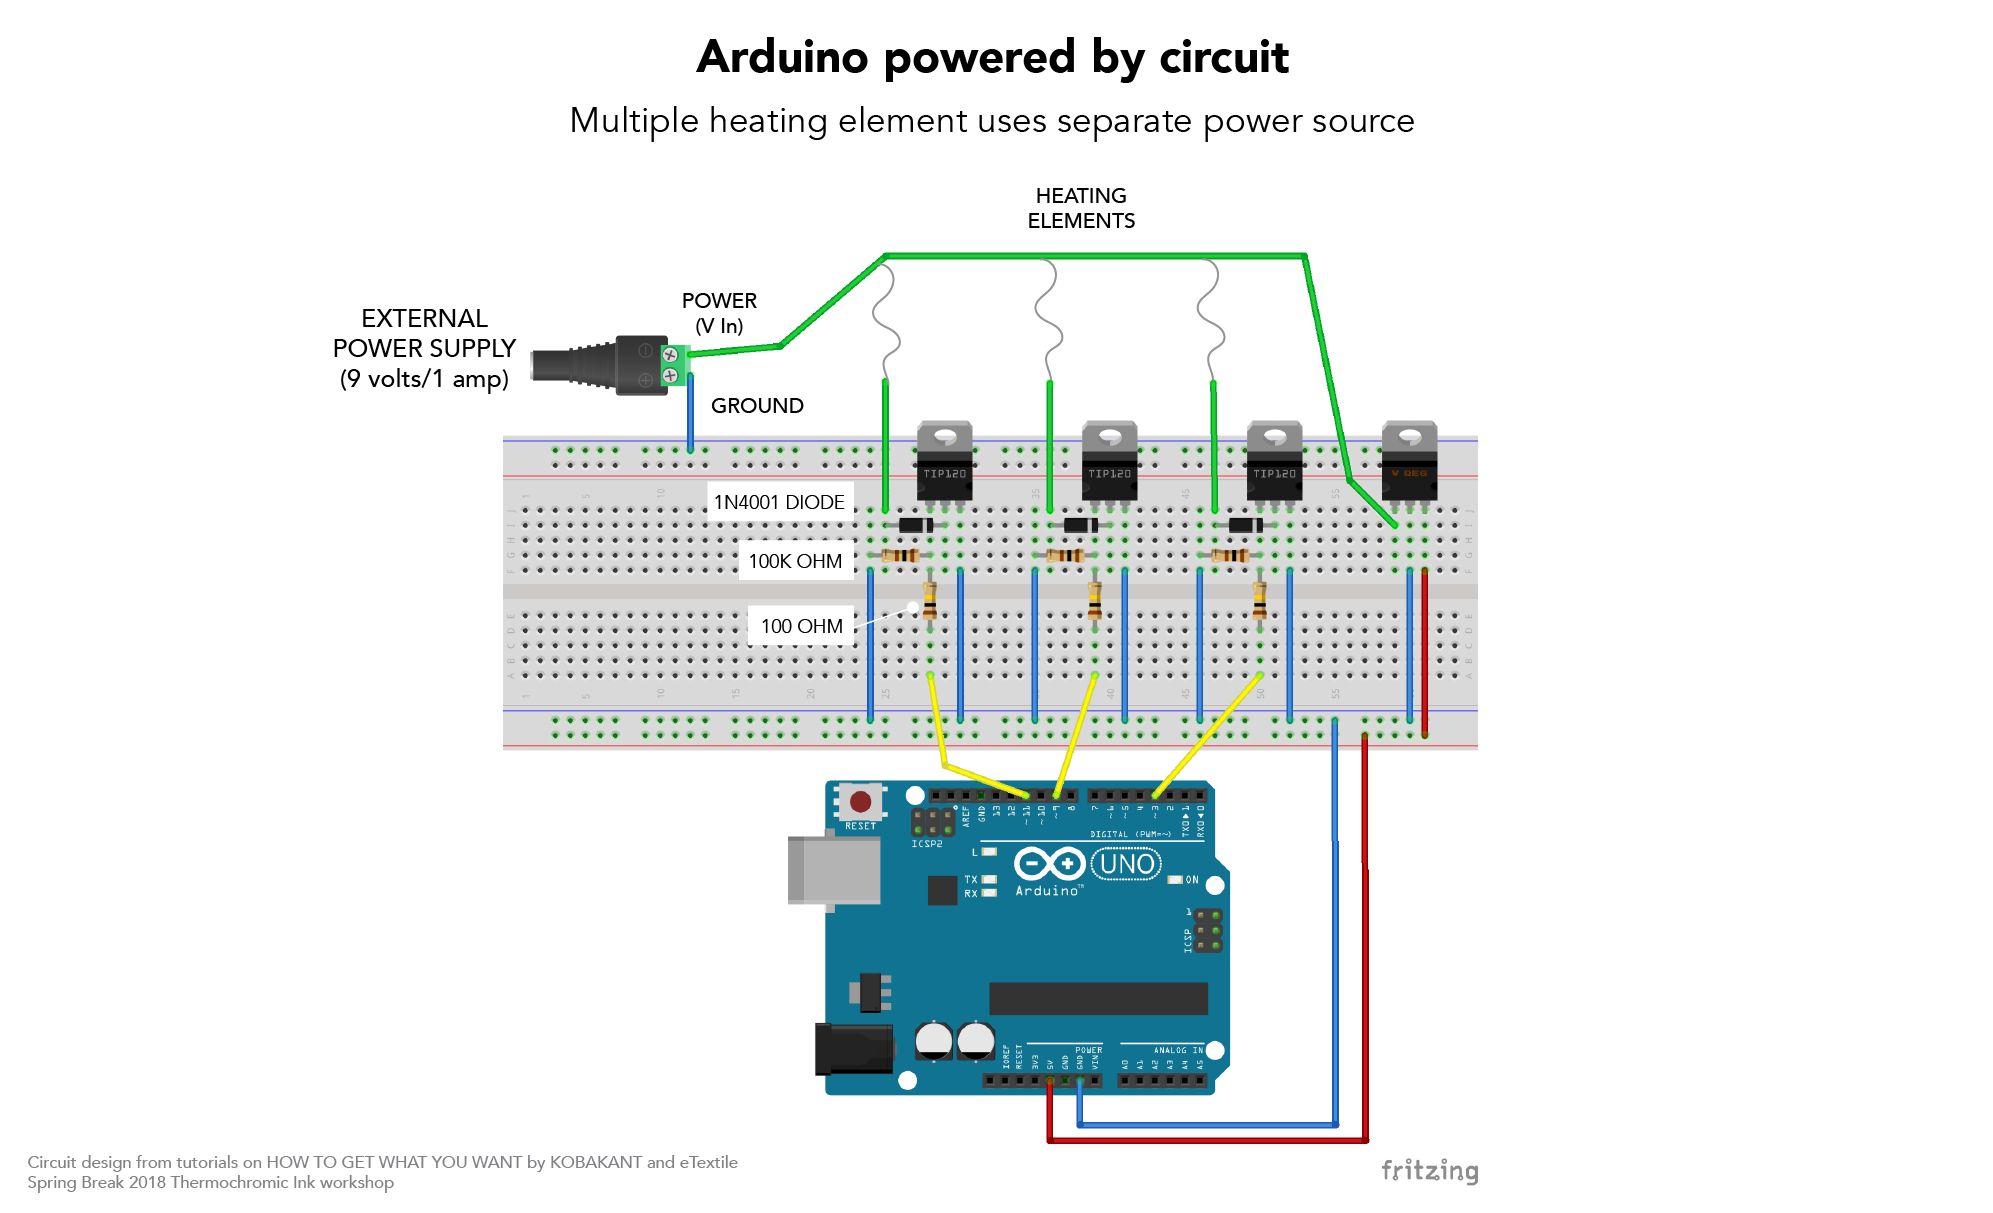 Heating Circuits Physical Computing Circuit Diagram Of 9 Volt Power Supply This Uses A Tip 120 But You Can Also Use Mosfet Irlz34n Spbf They Have The Same Pinout